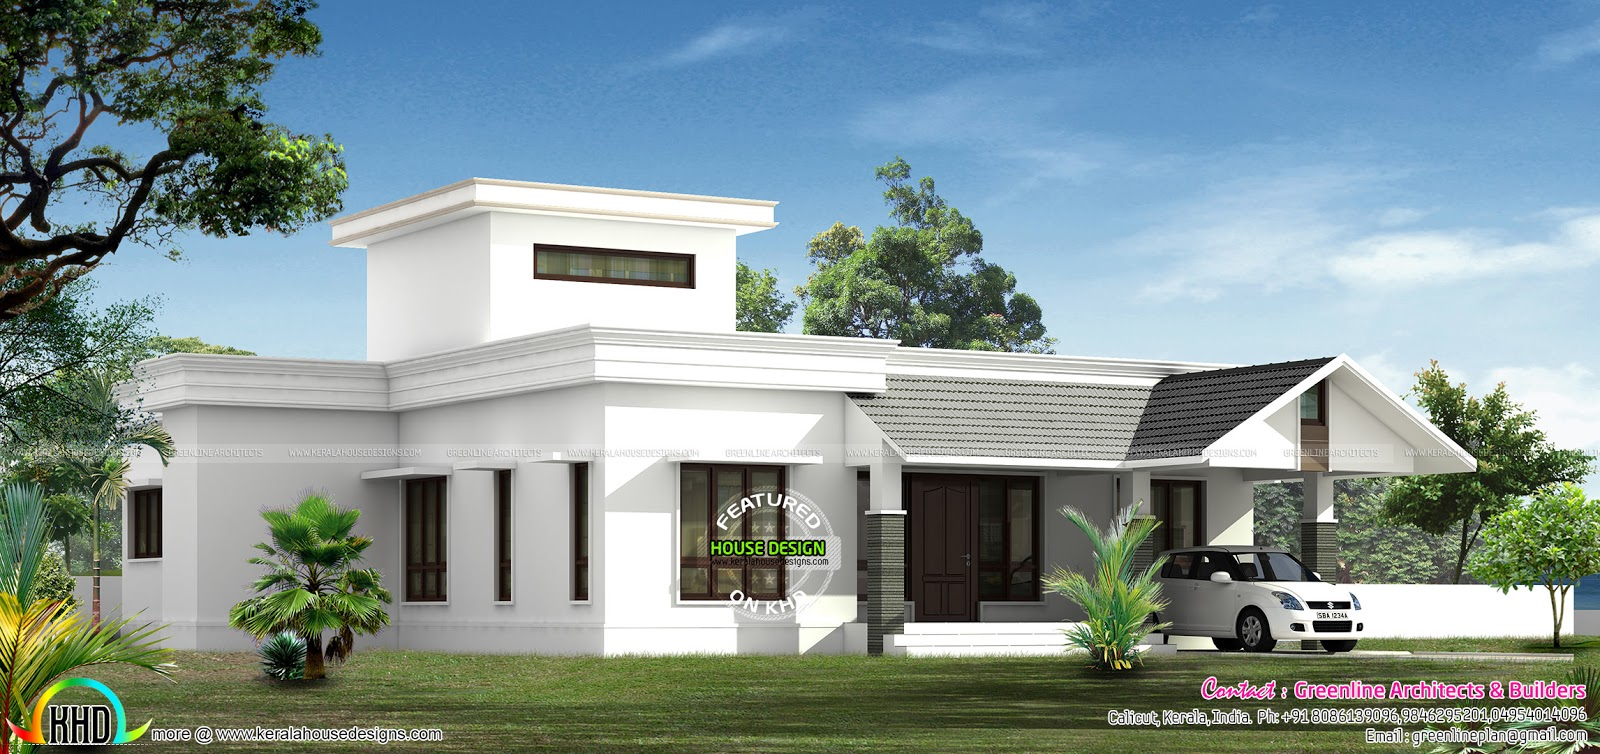 Low budjet single floor house design two side views for Building houses with side views